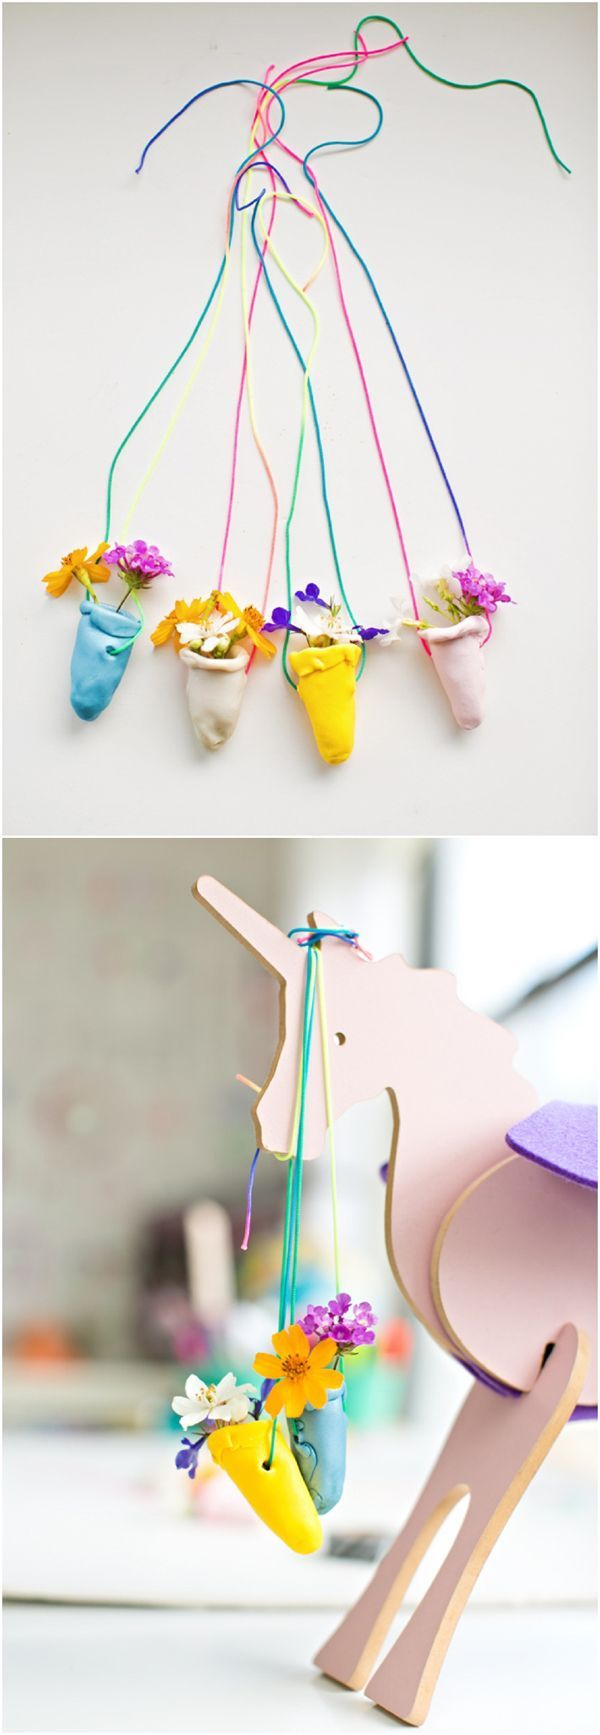 DIY Clay Flower Vase Necklace. Such a cute nature flower craft for kids!